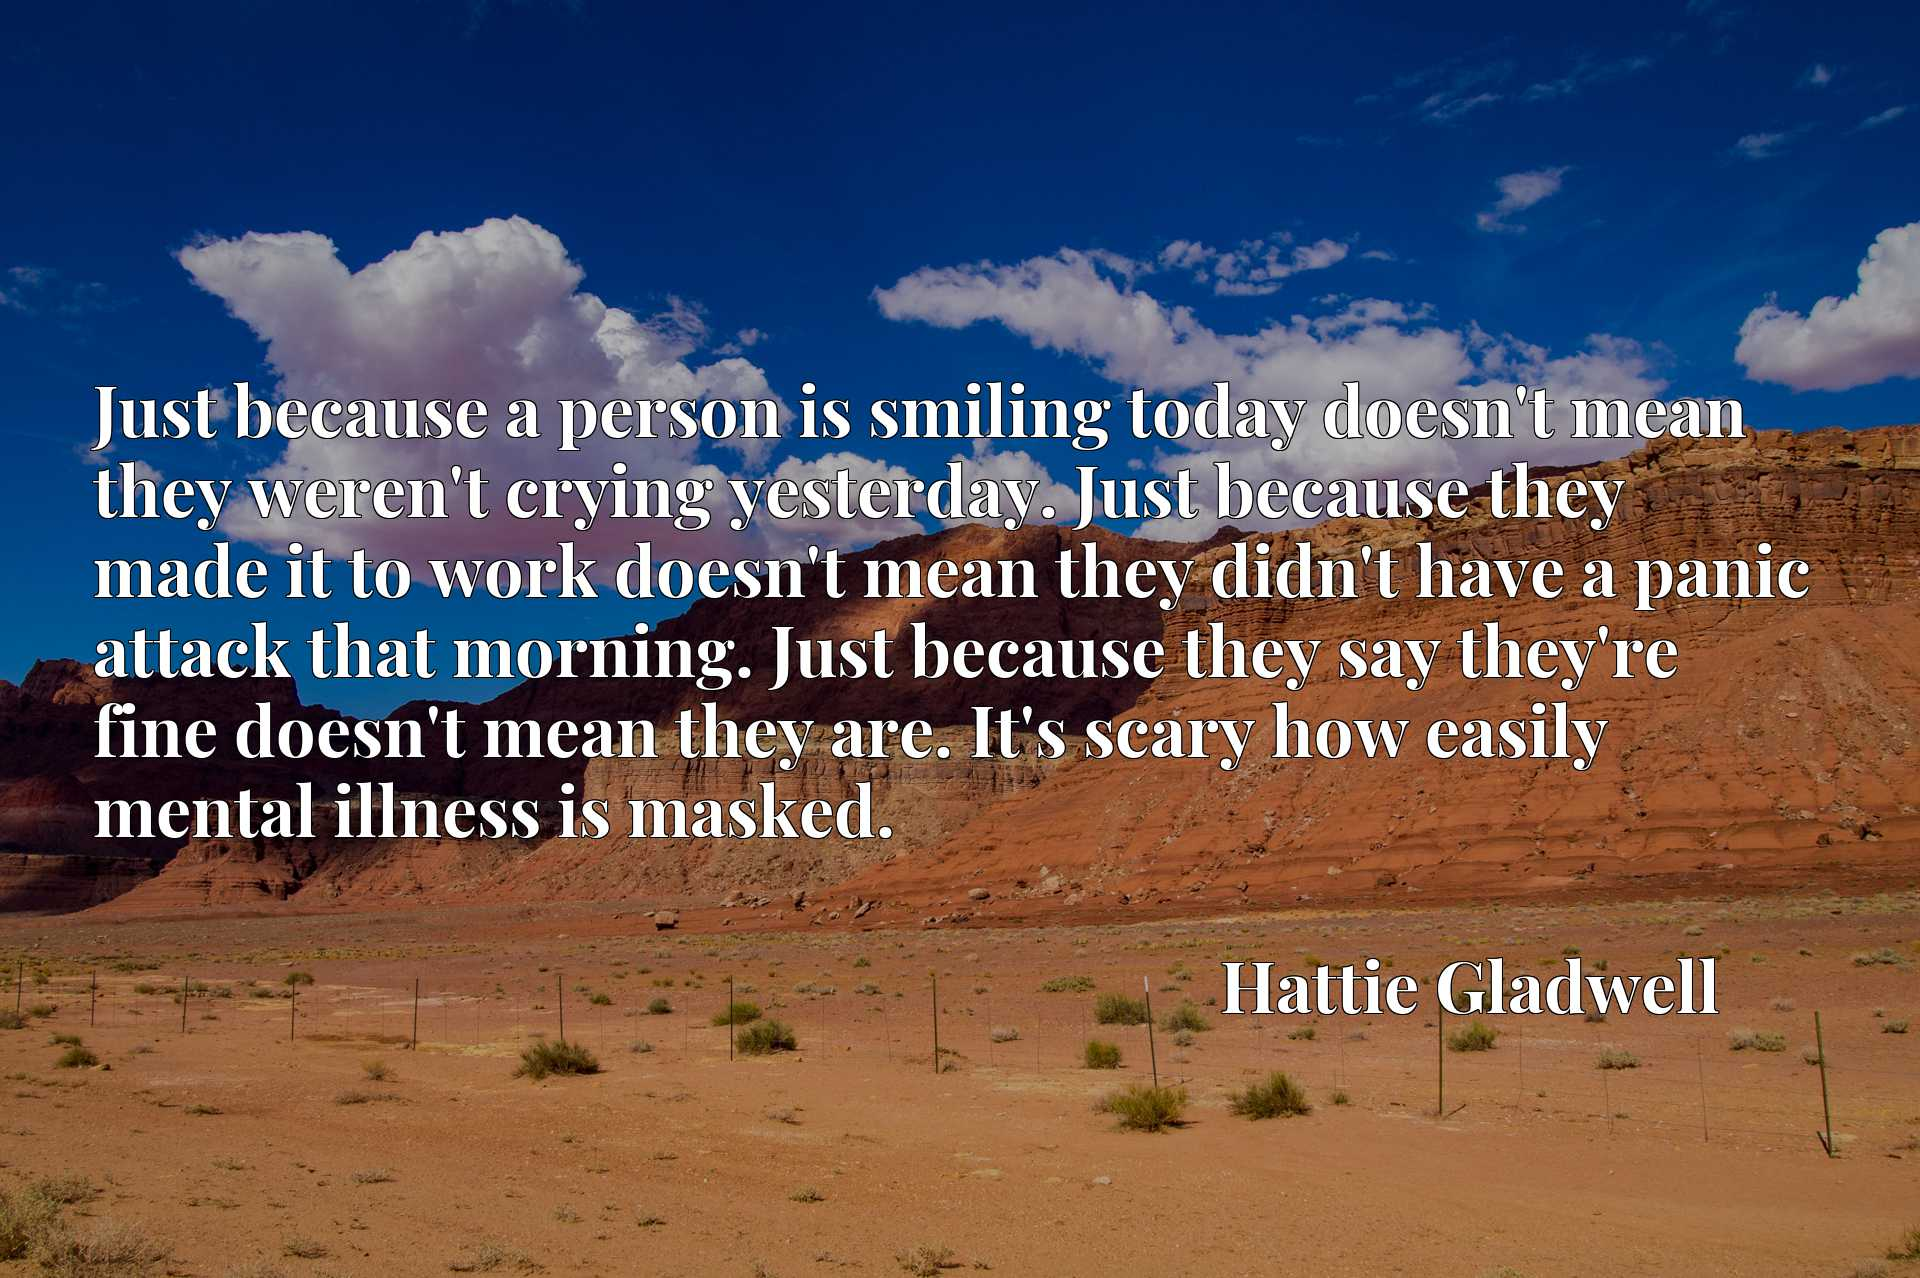 Just because a person is smiling today doesn't mean they weren't crying yesterday. Just because they made it to work doesn't mean they didn't have a panic attack that morning. Just because they say they're fine doesn't mean they are. It's scary how easily mental illness is masked.